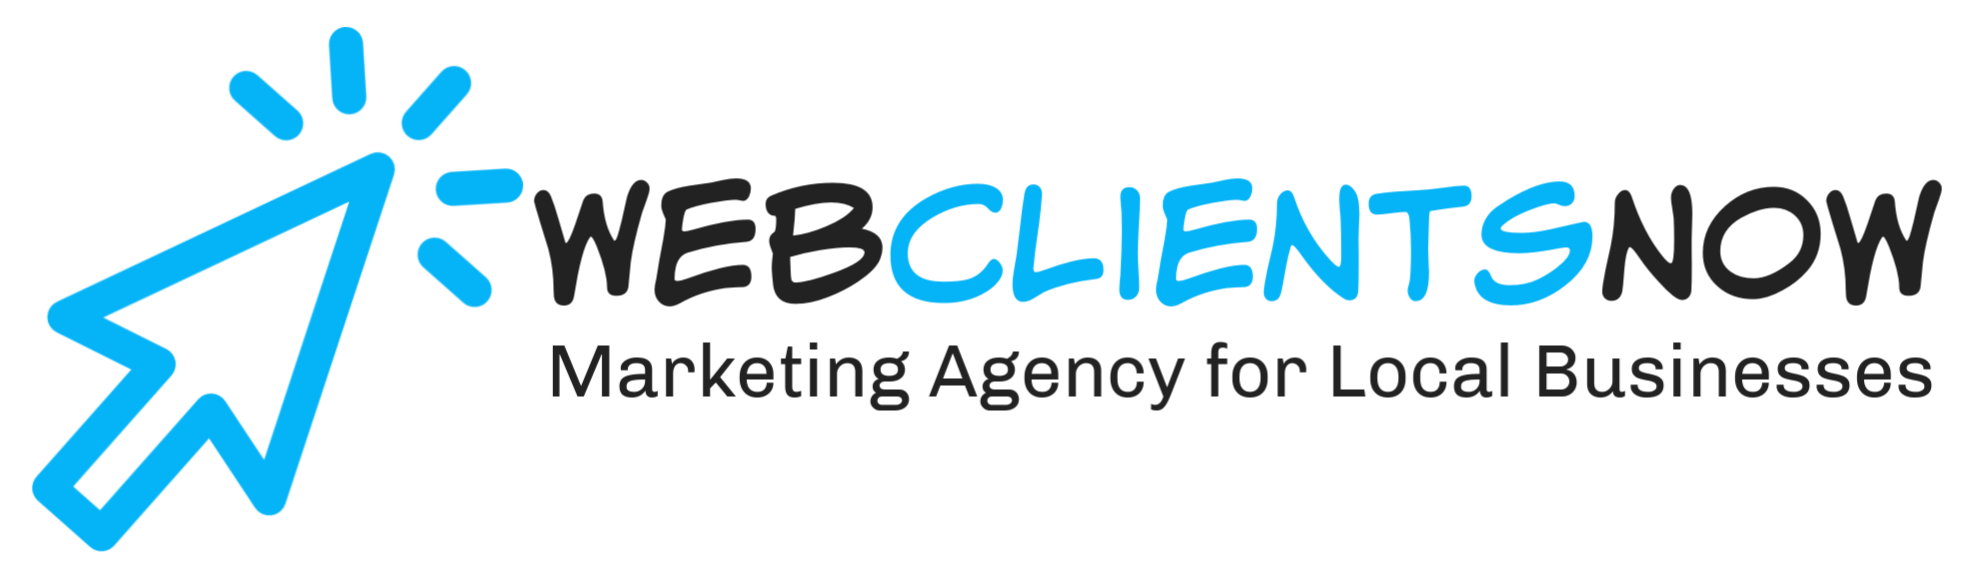 Web Clients Now Digital Marketing Agency for Local Businesses